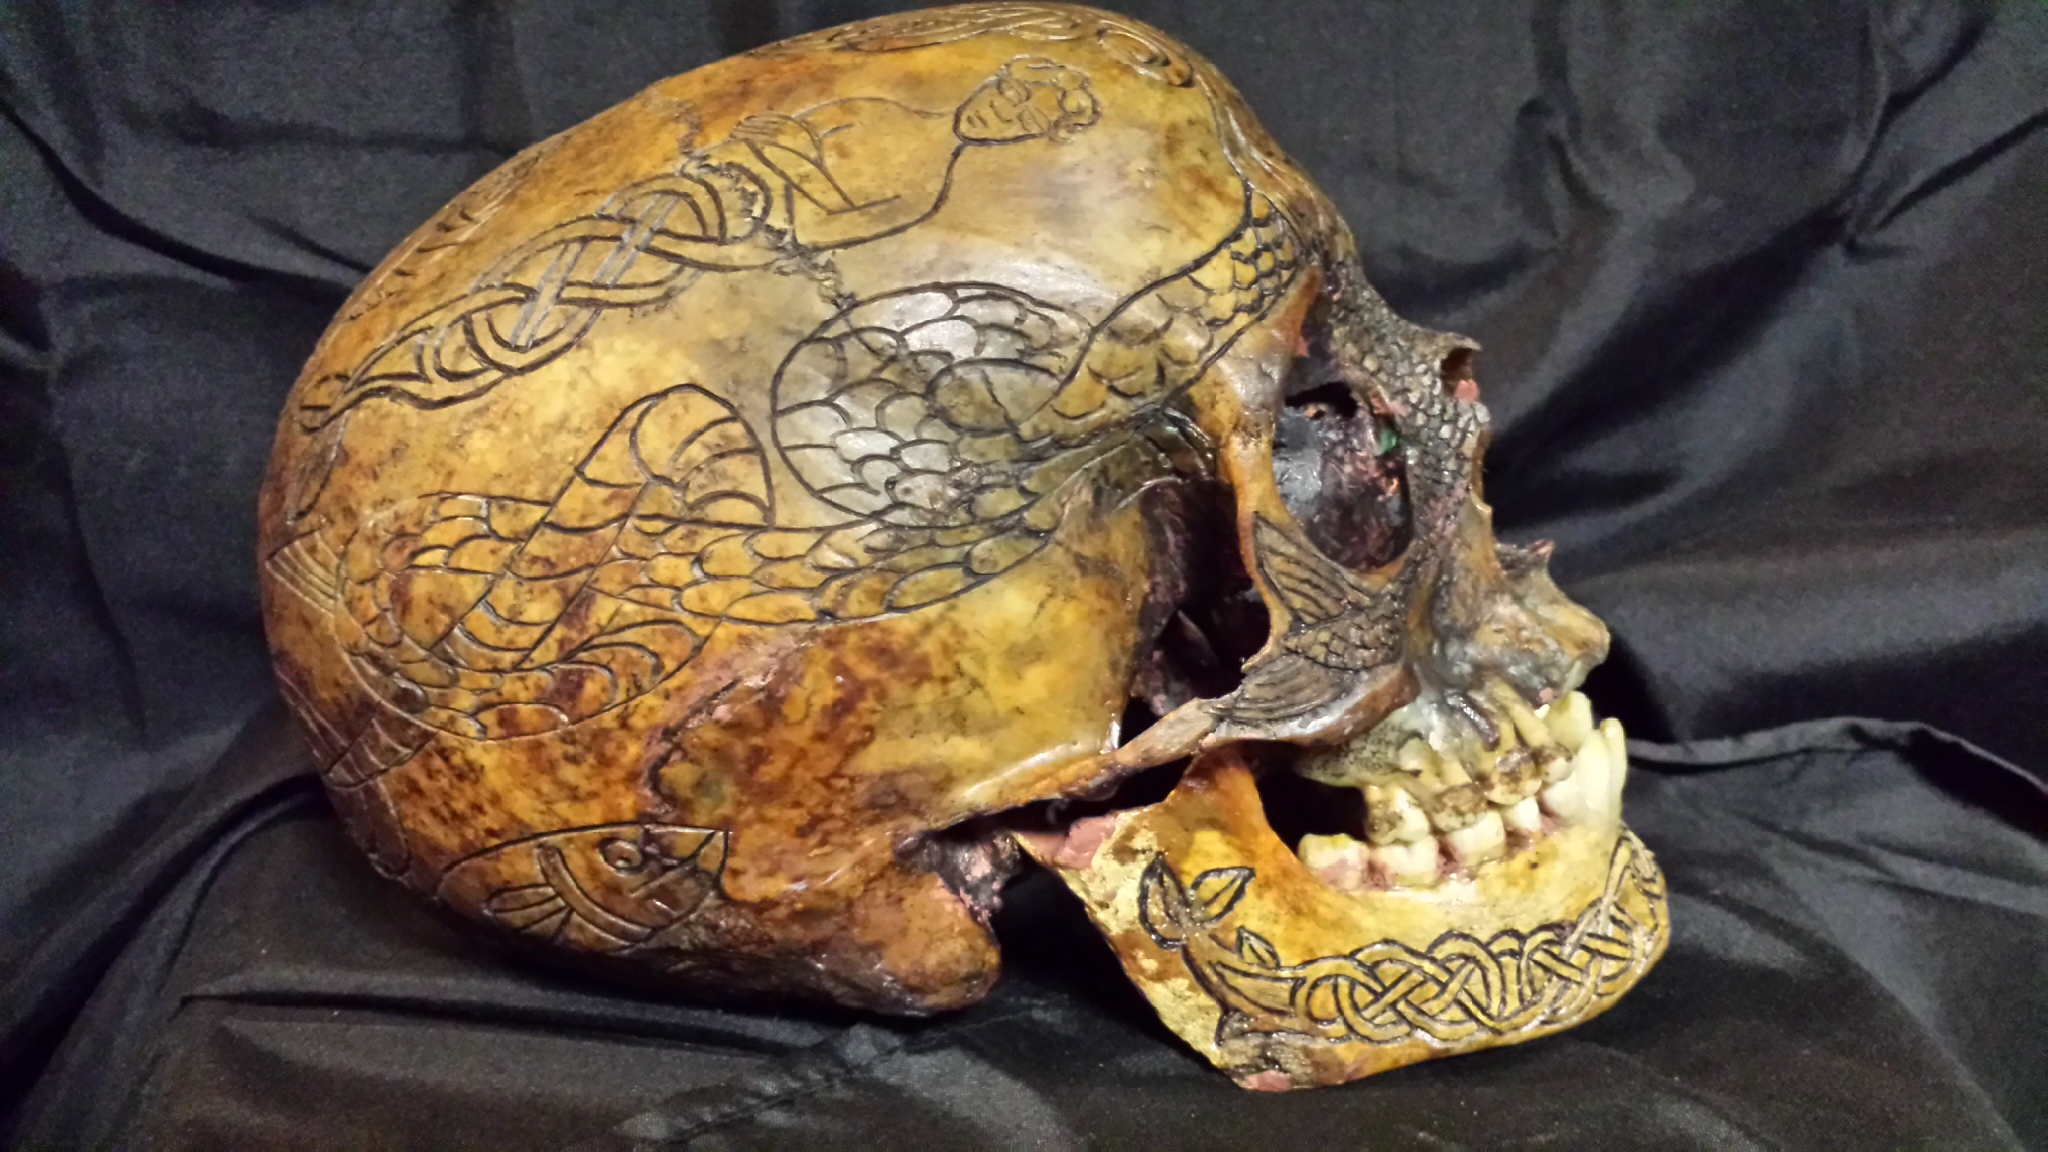 How to obtain a real human skull guide for buyers